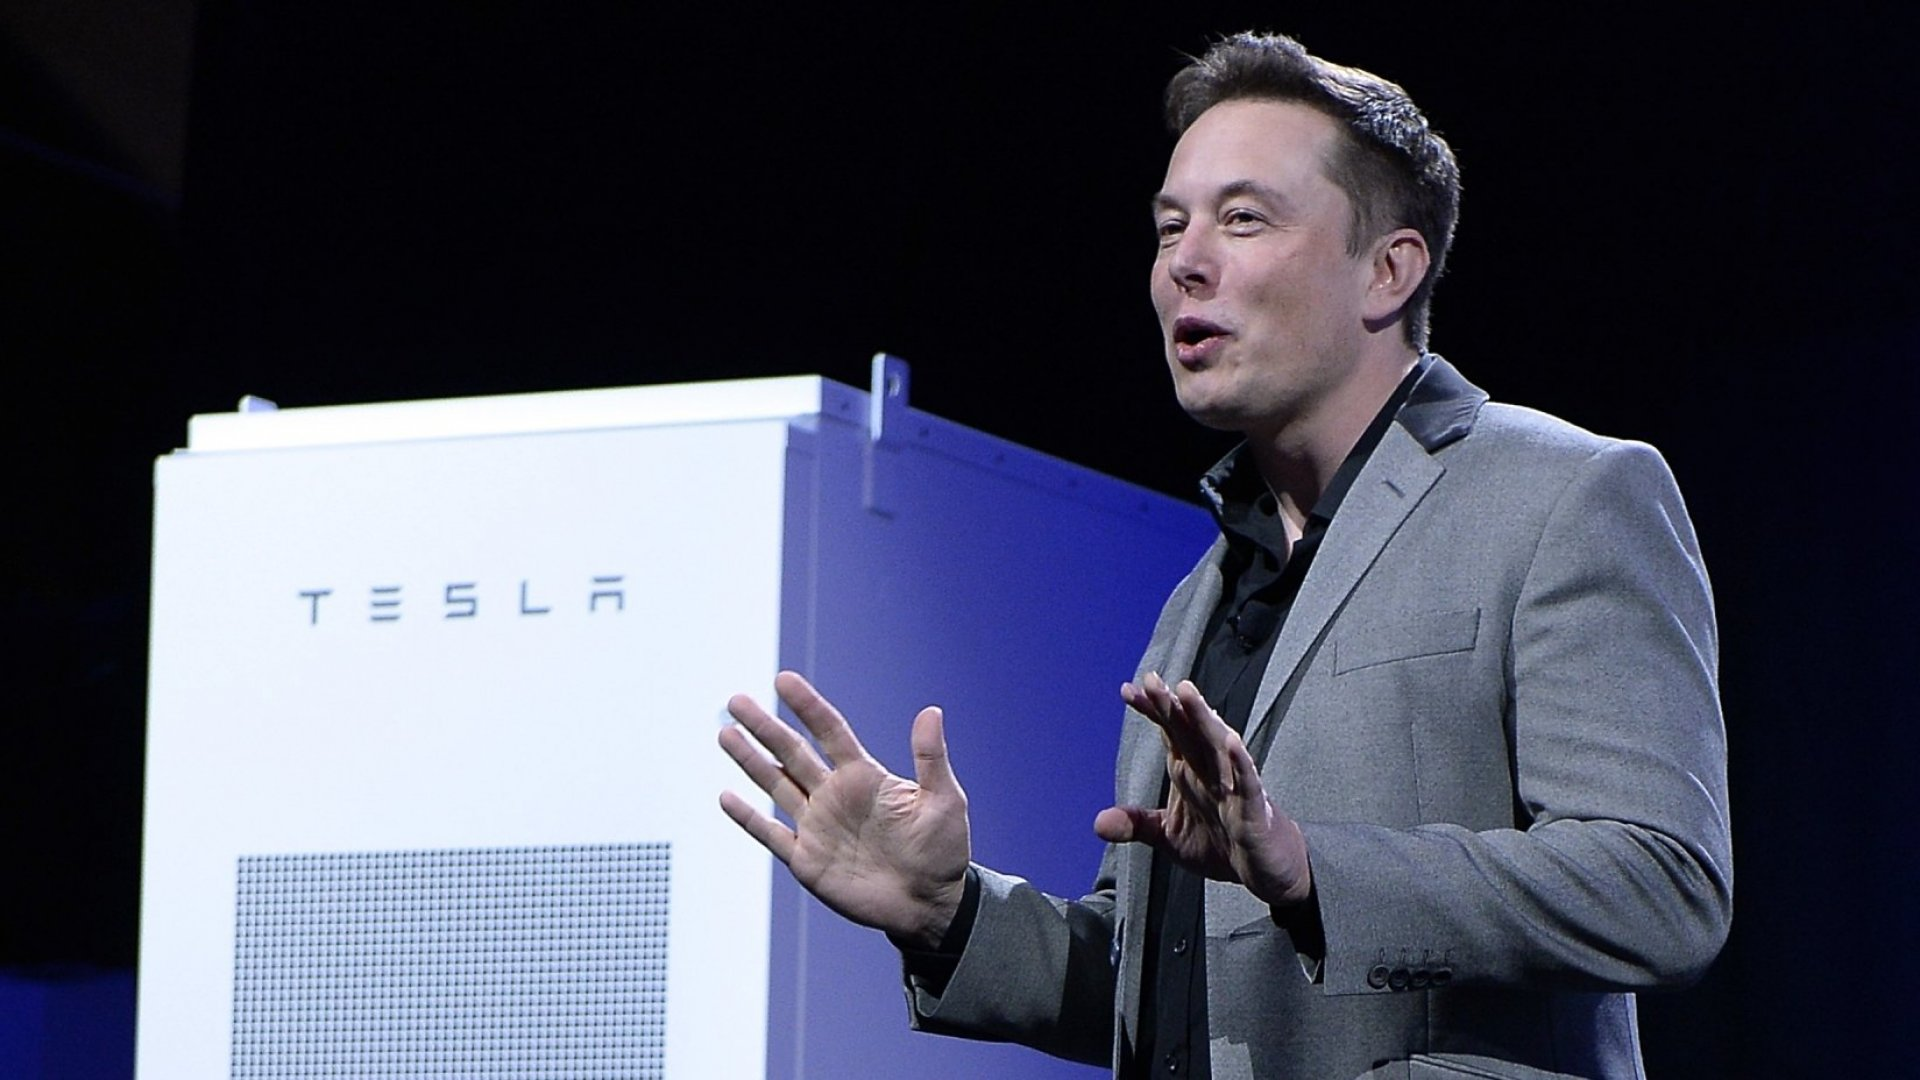 Why Elon Musk Is Scared of Artificial Intelligence